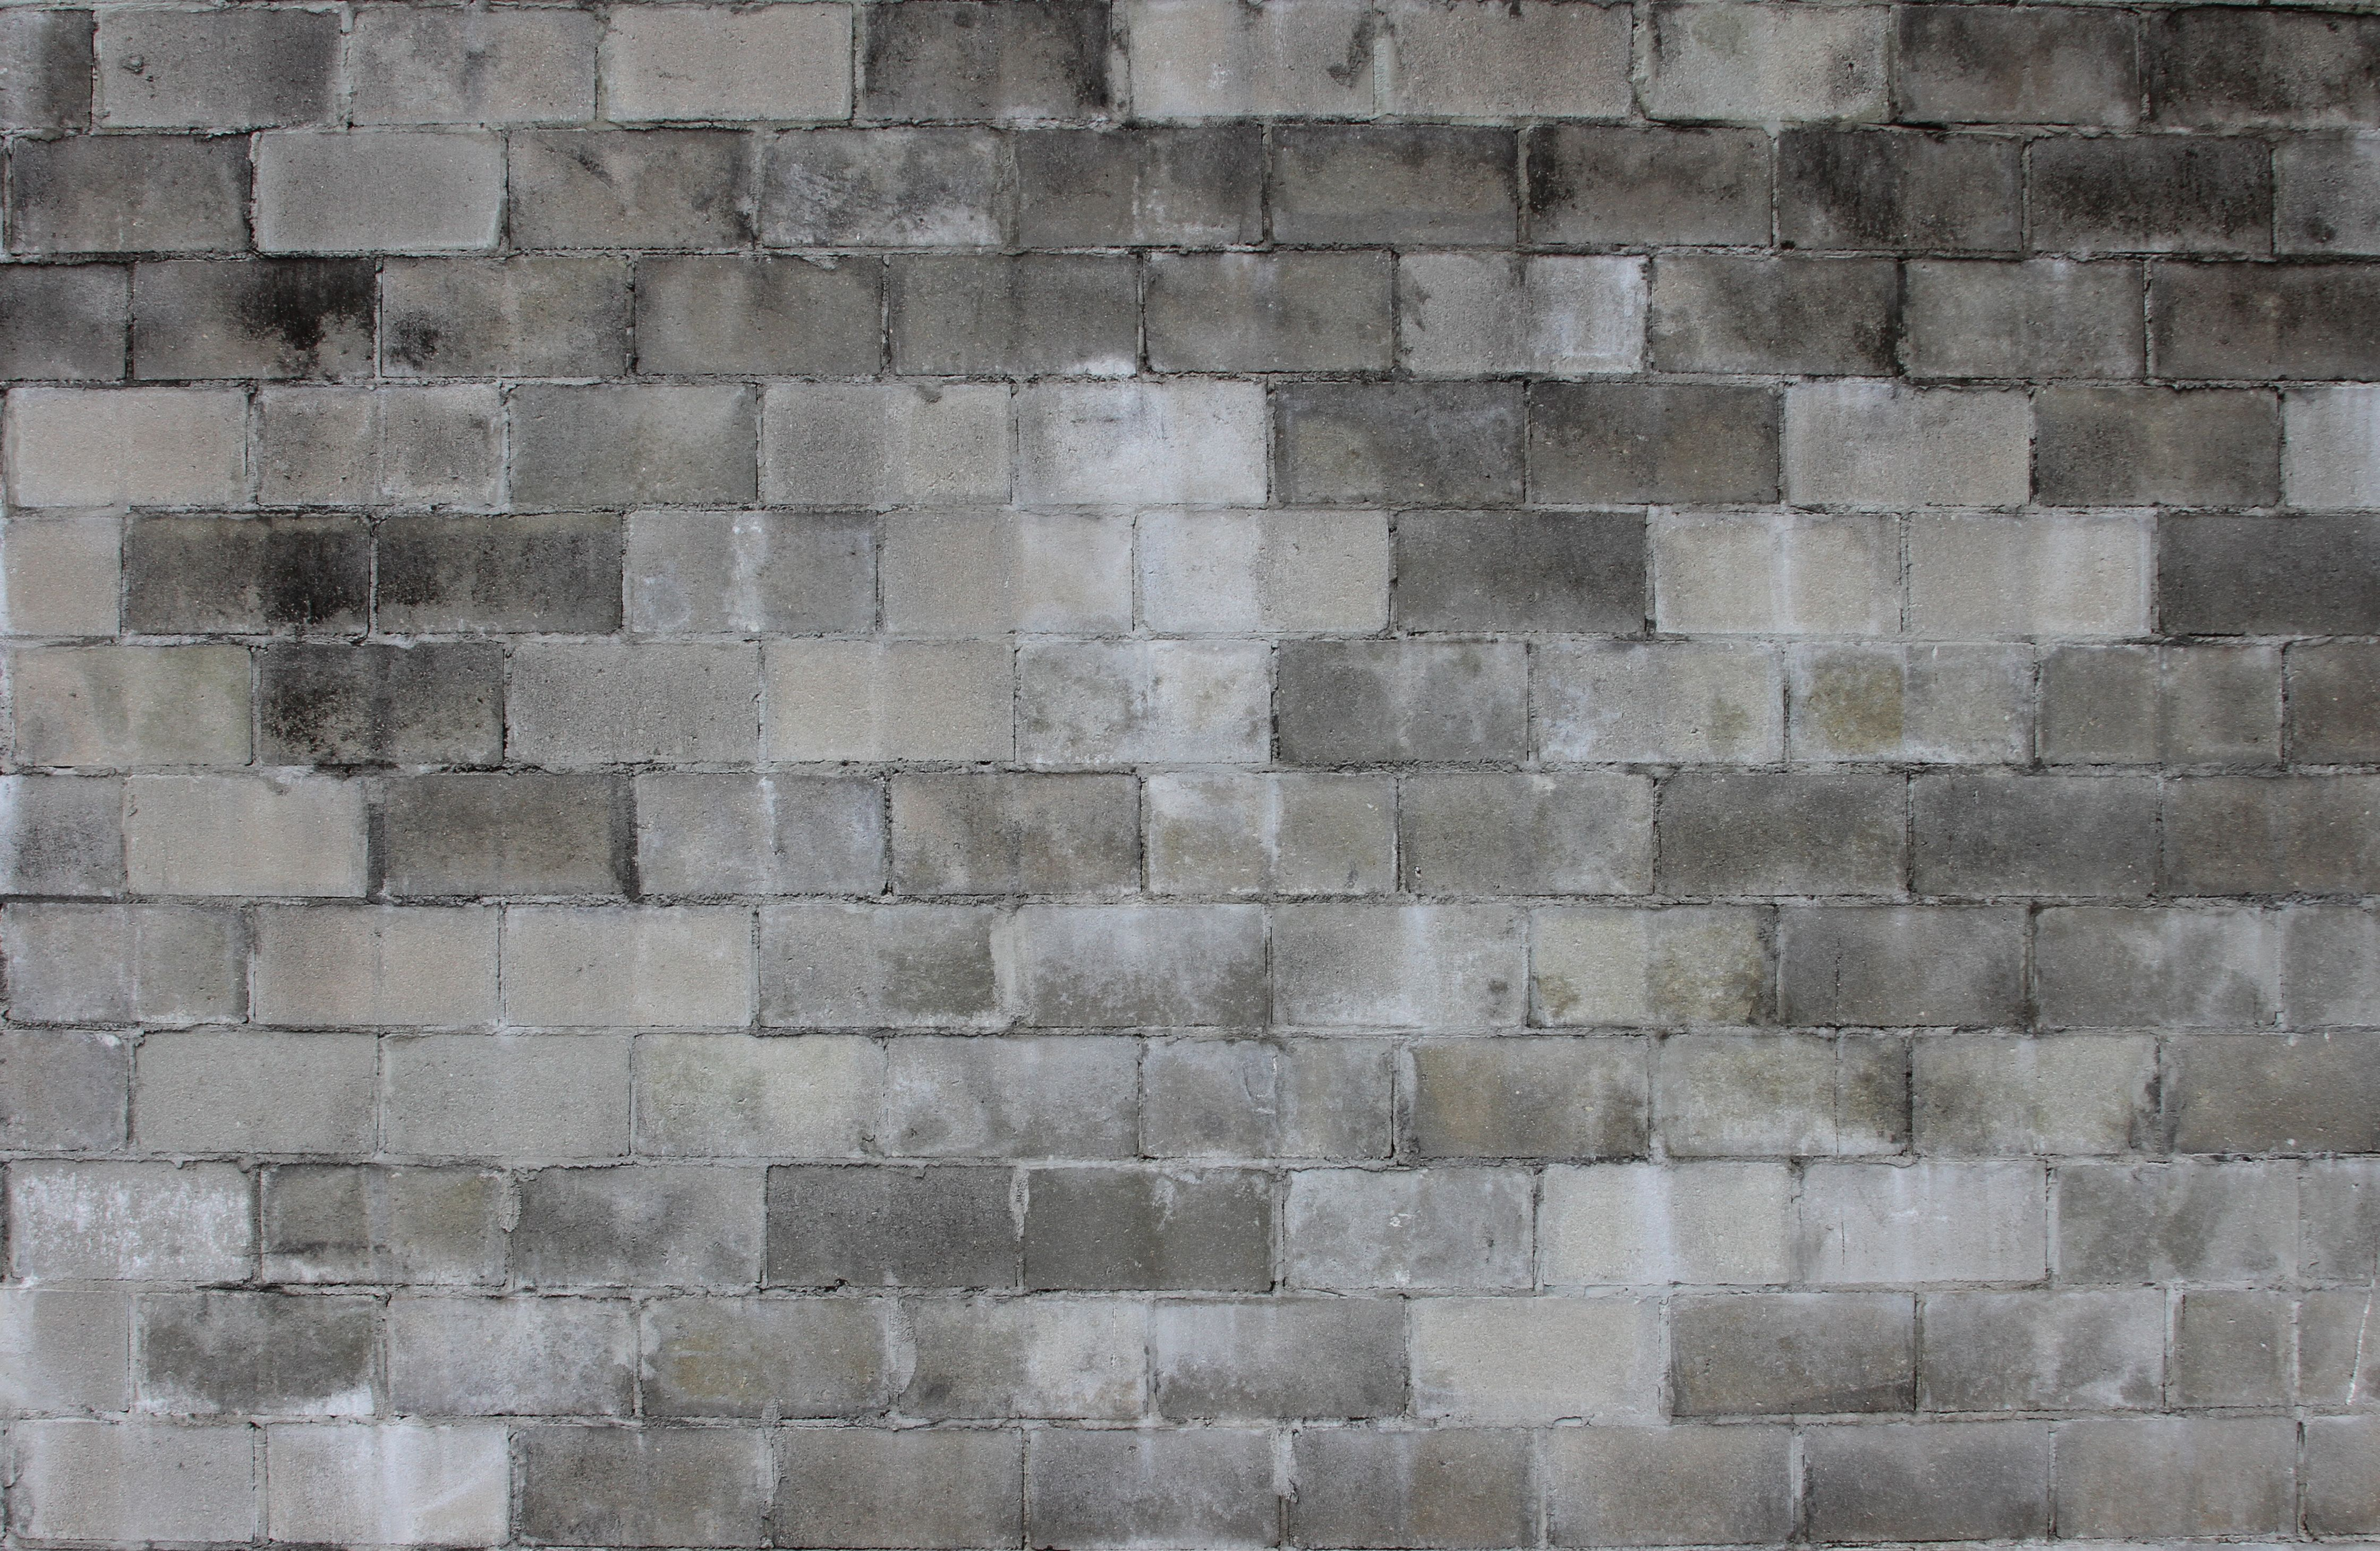 High Quality High Resolution Weathered Cinder Block Wall Texture Ideal For Texturing  Construction Scenes In